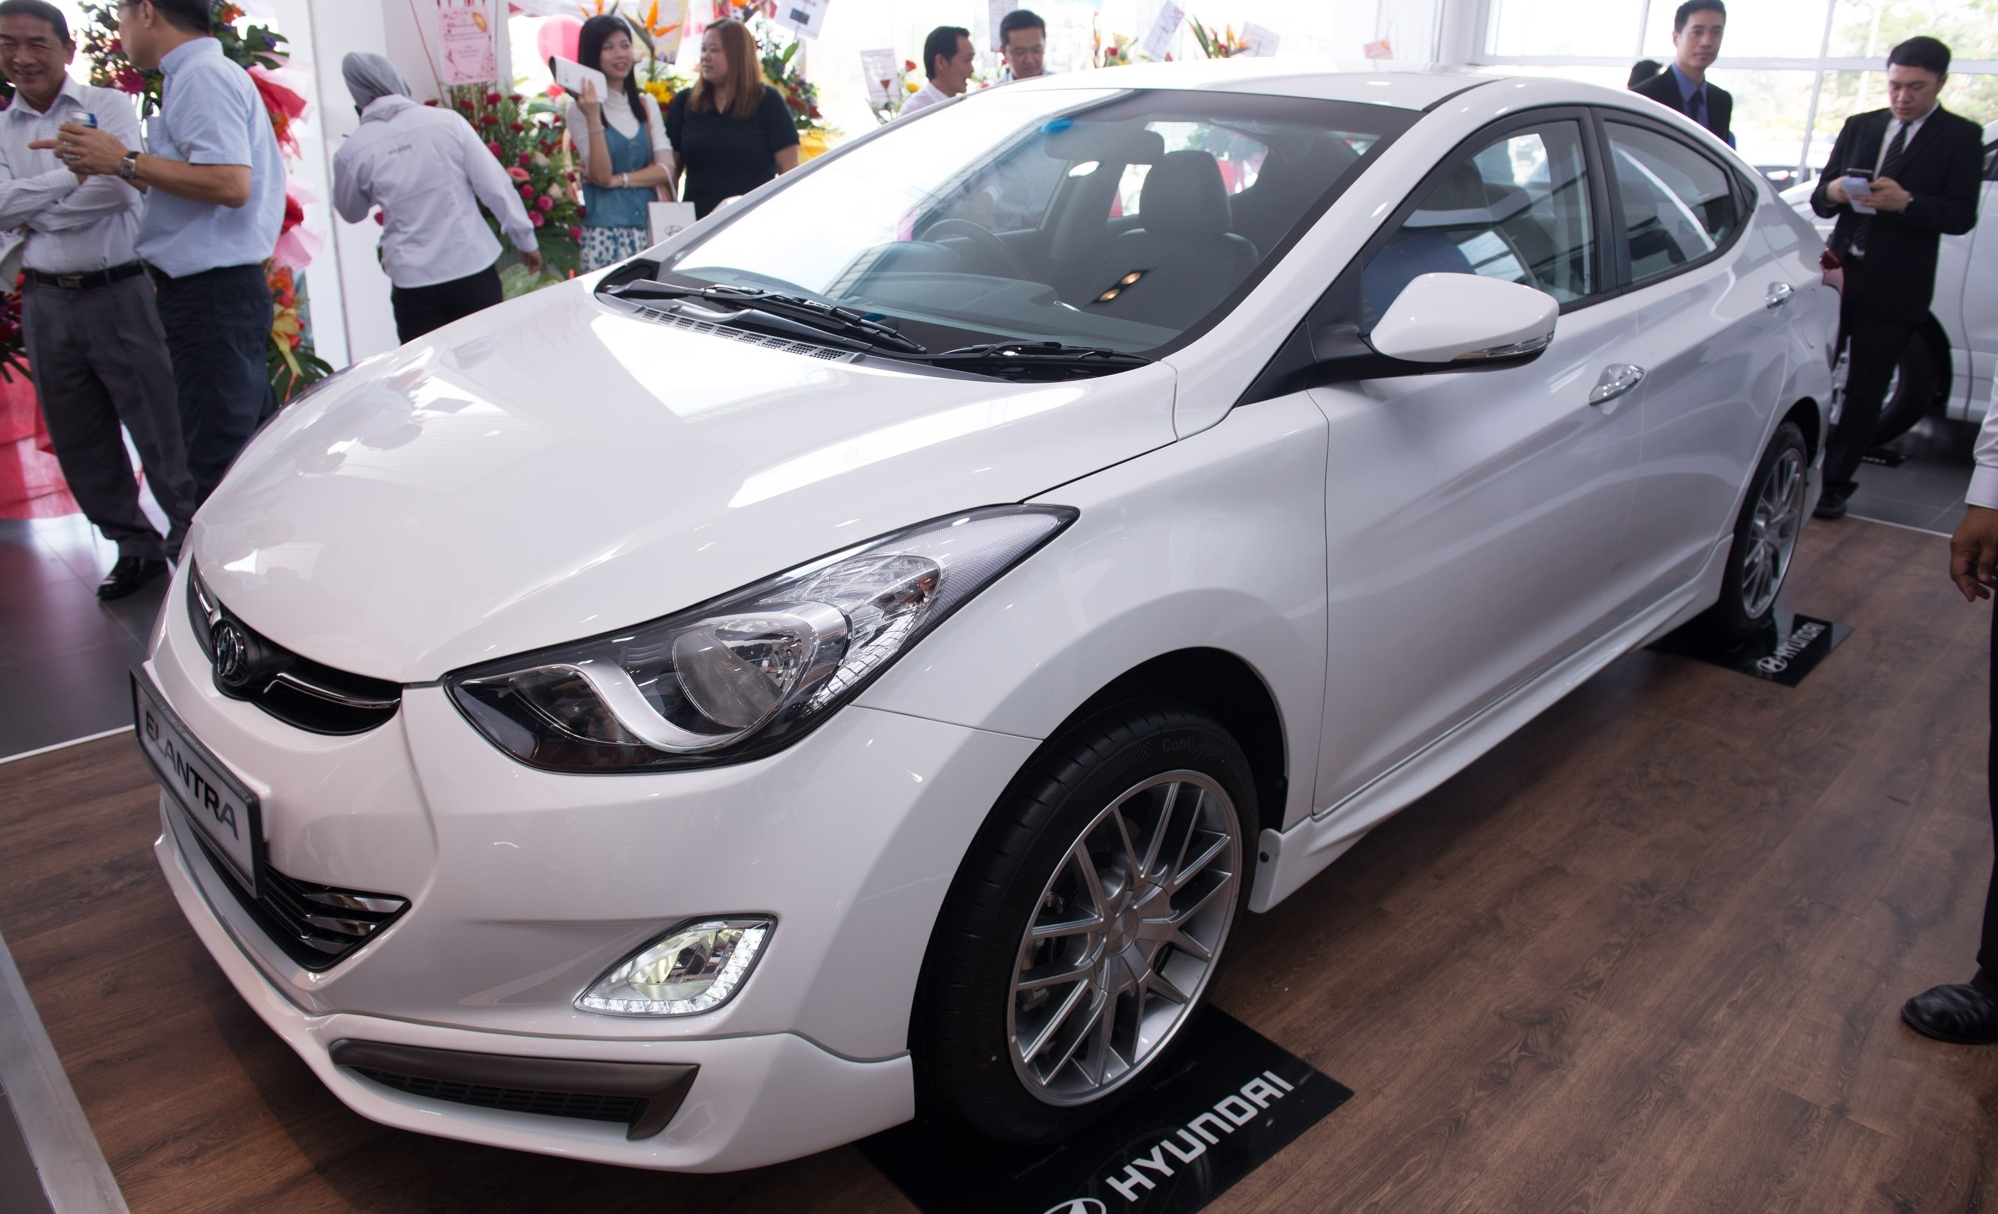 hyundai sports series debuting in april the elantra sport 1 6 and 1 8 tucson sport and i40 sport. Black Bedroom Furniture Sets. Home Design Ideas